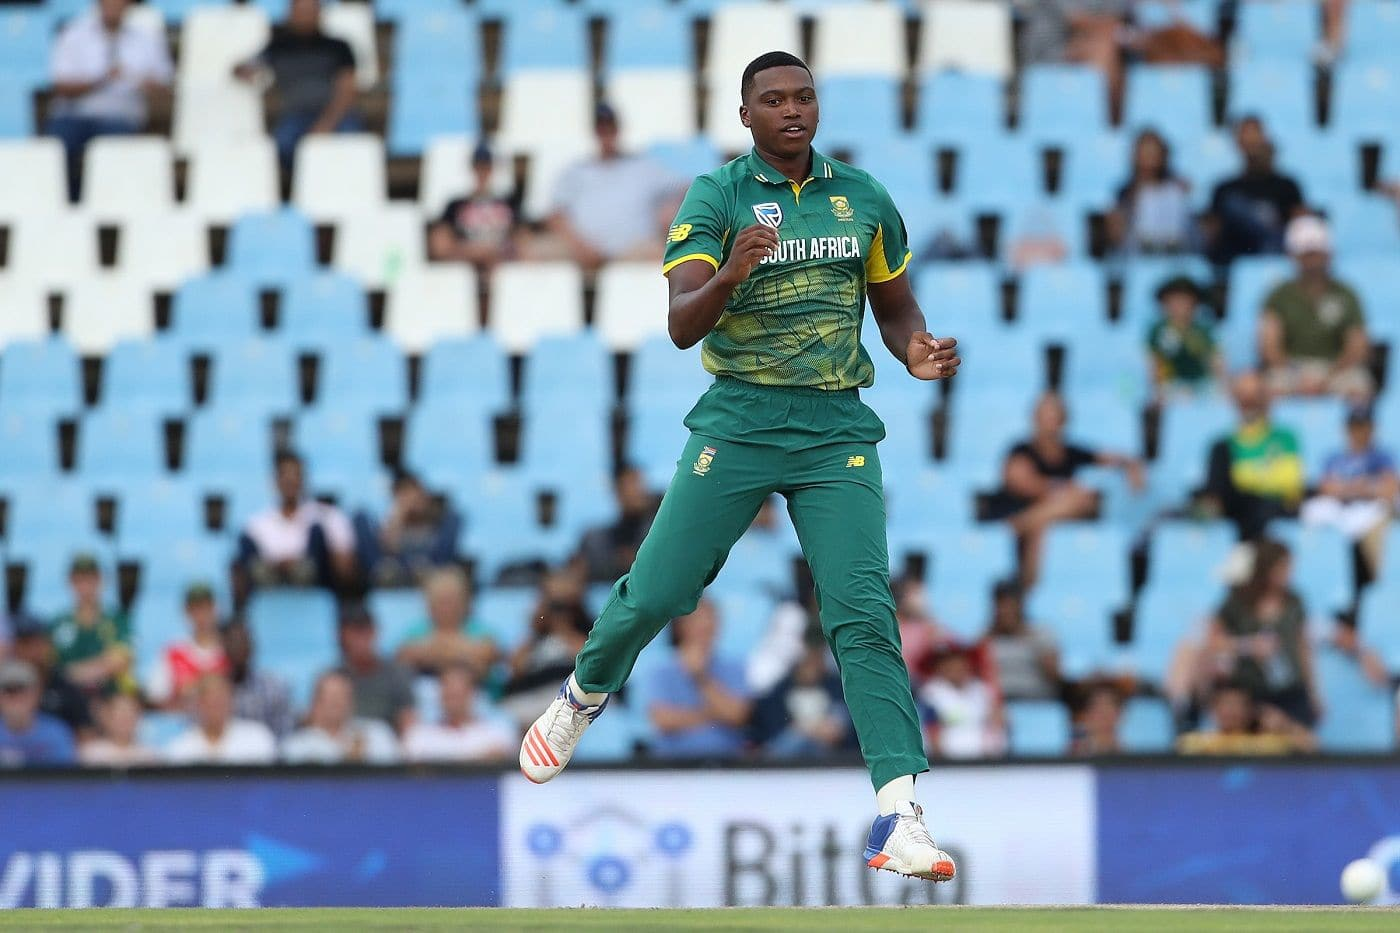 Lungi Ngidi sidelined for three months with knee injury